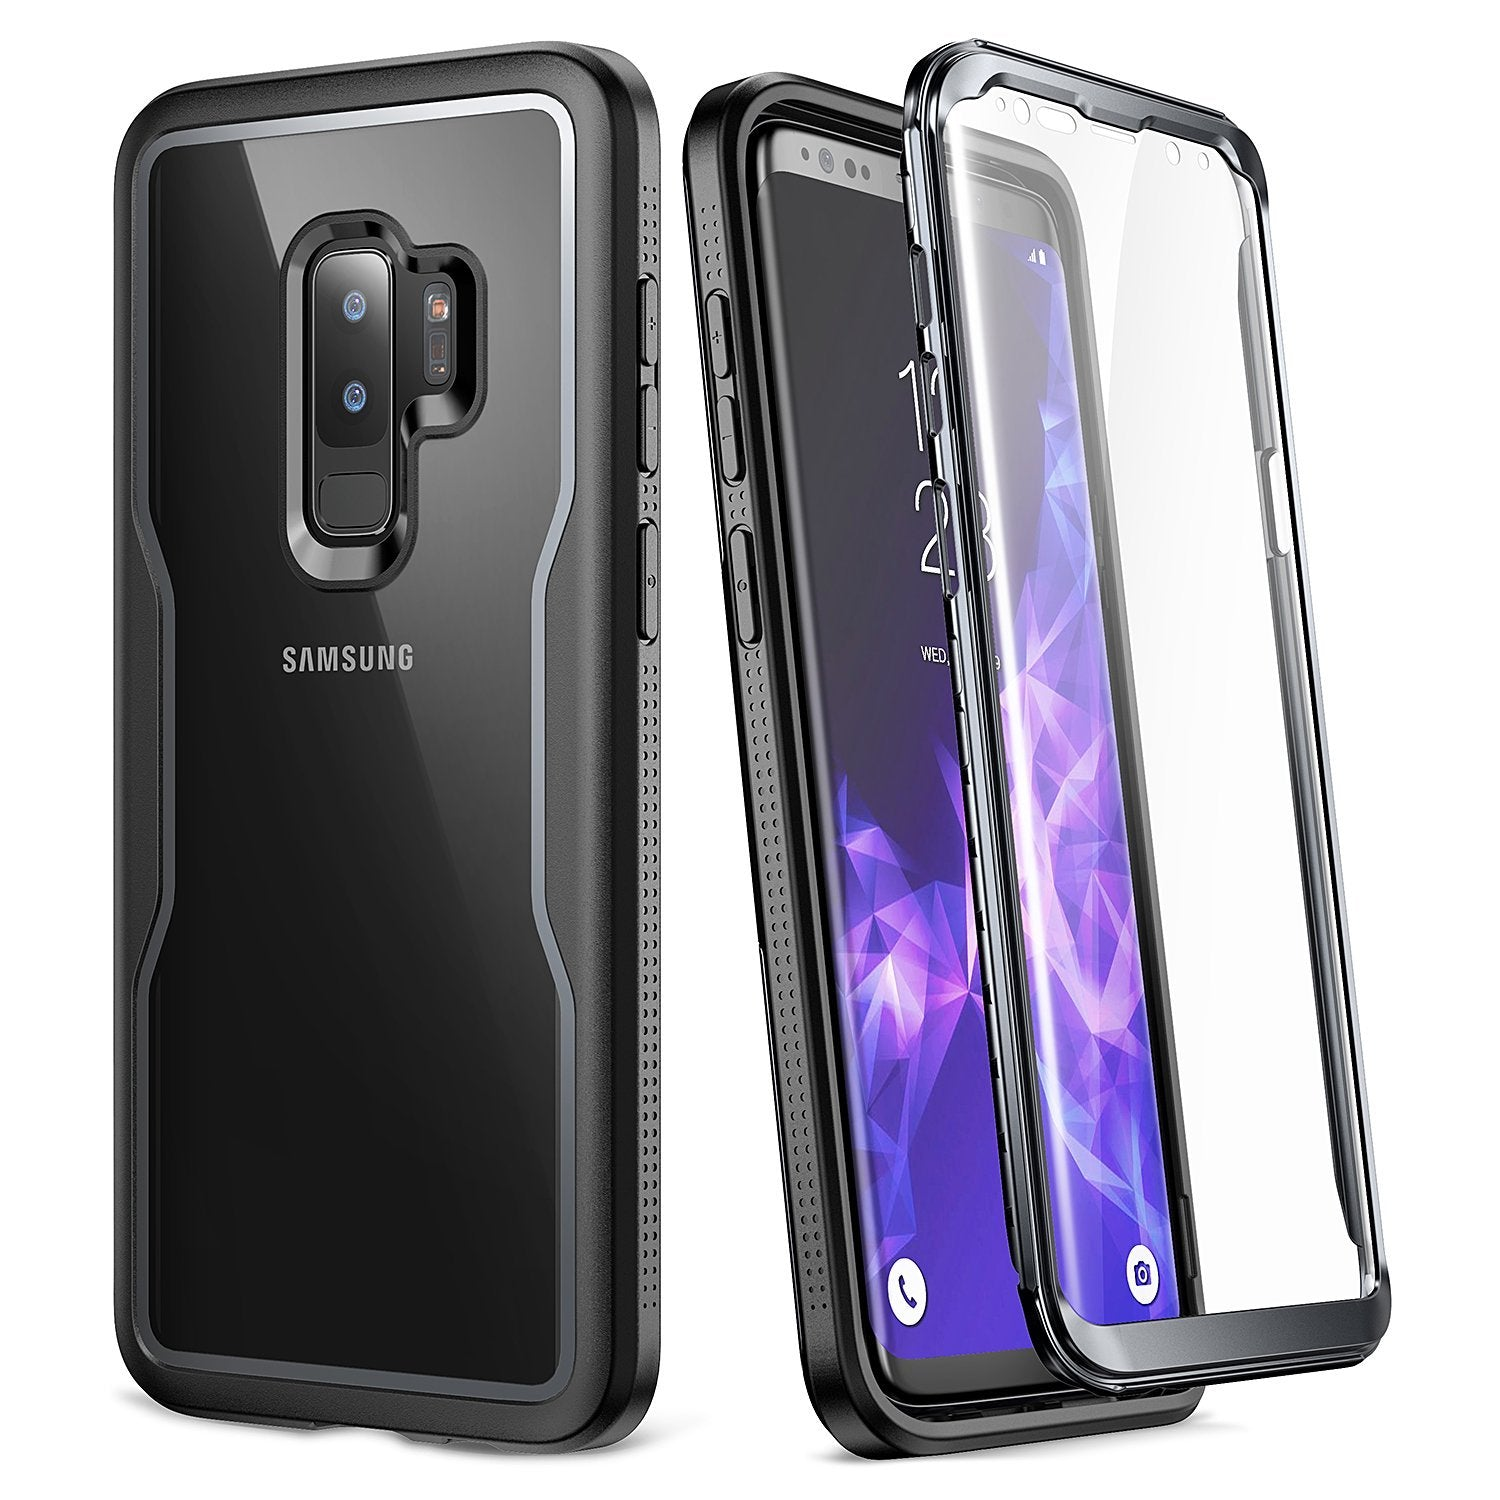 YOUMAKER Samsung Galaxy S9 Crystal Clear Shockproof Full-body Case Cover